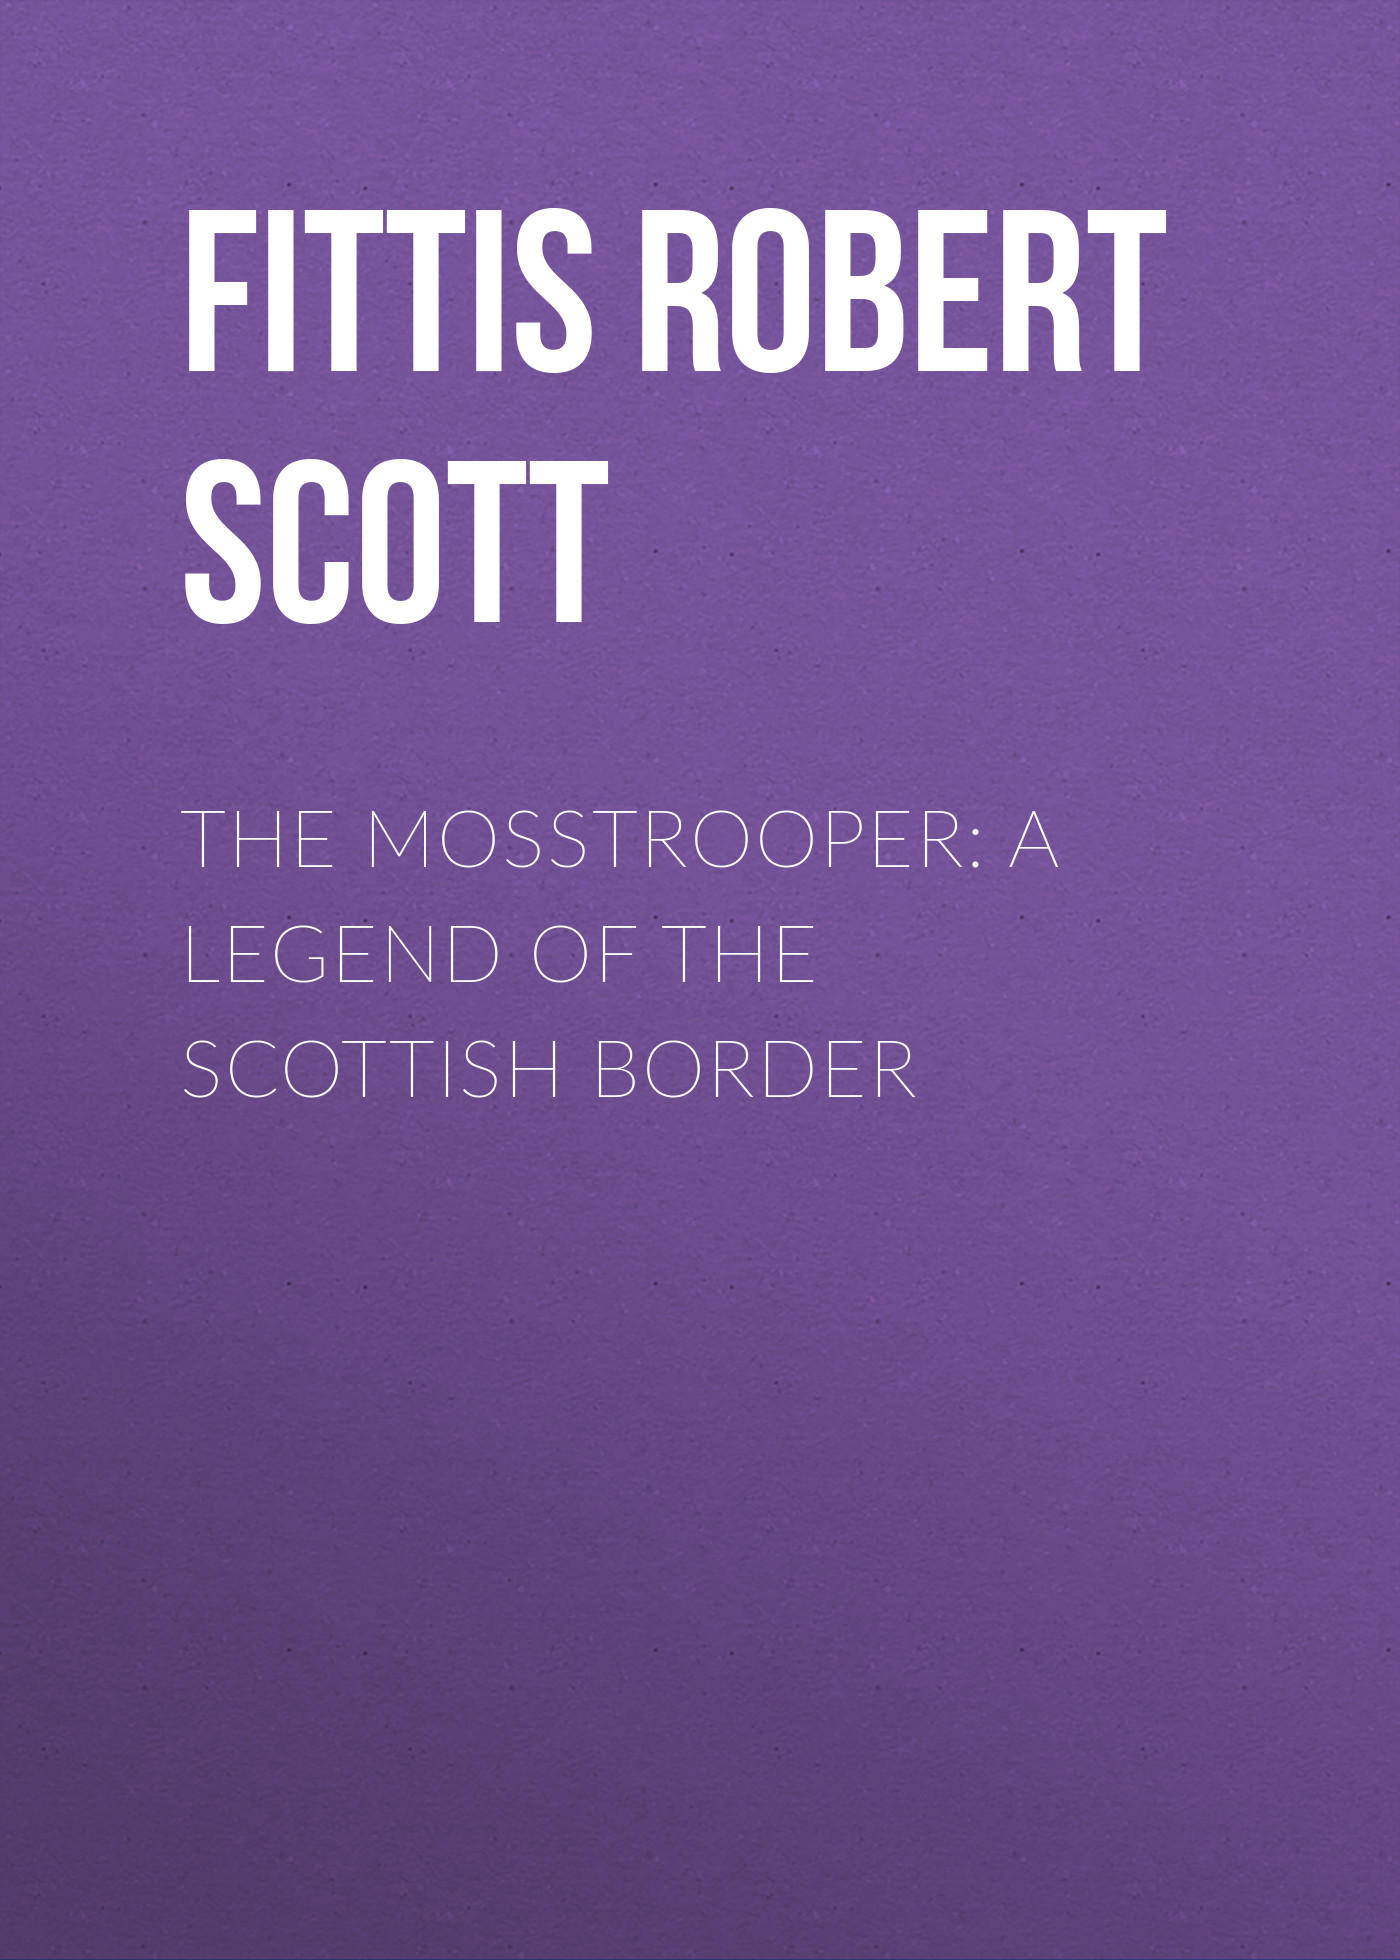 Fittis Robert Scott The Mosstrooper: A Legend of the Scottish Border